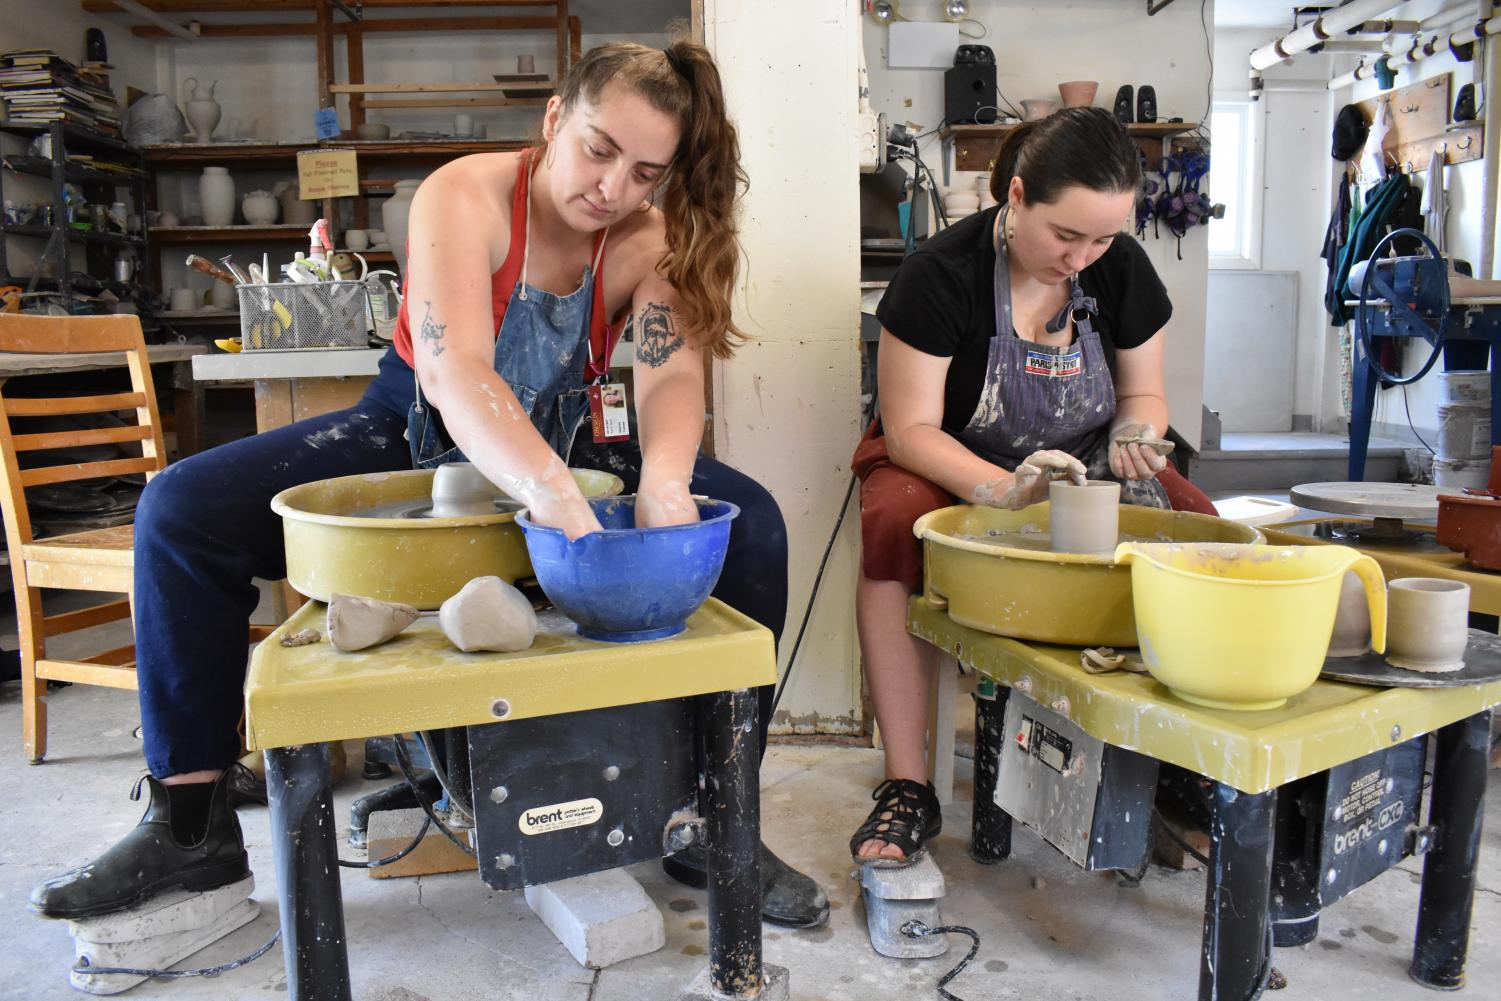 Members of the Pottery Co-Op sit at potters wheels. The co-op aims to be an inclusive space for students of all levels who want to learn how to create pottery.